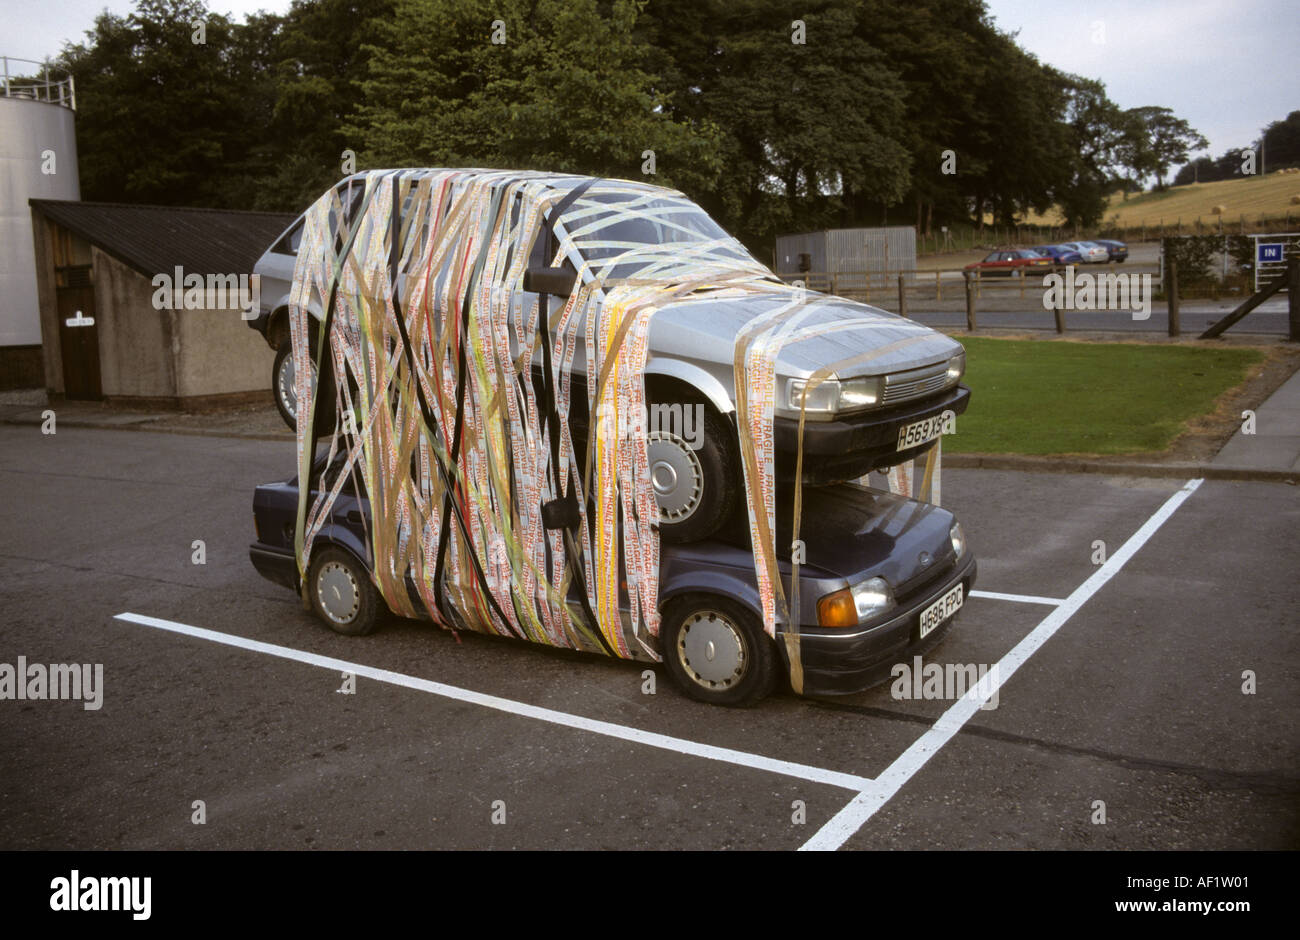 Car Art Practical Joke taping two cars together on top of each other - Stock Image